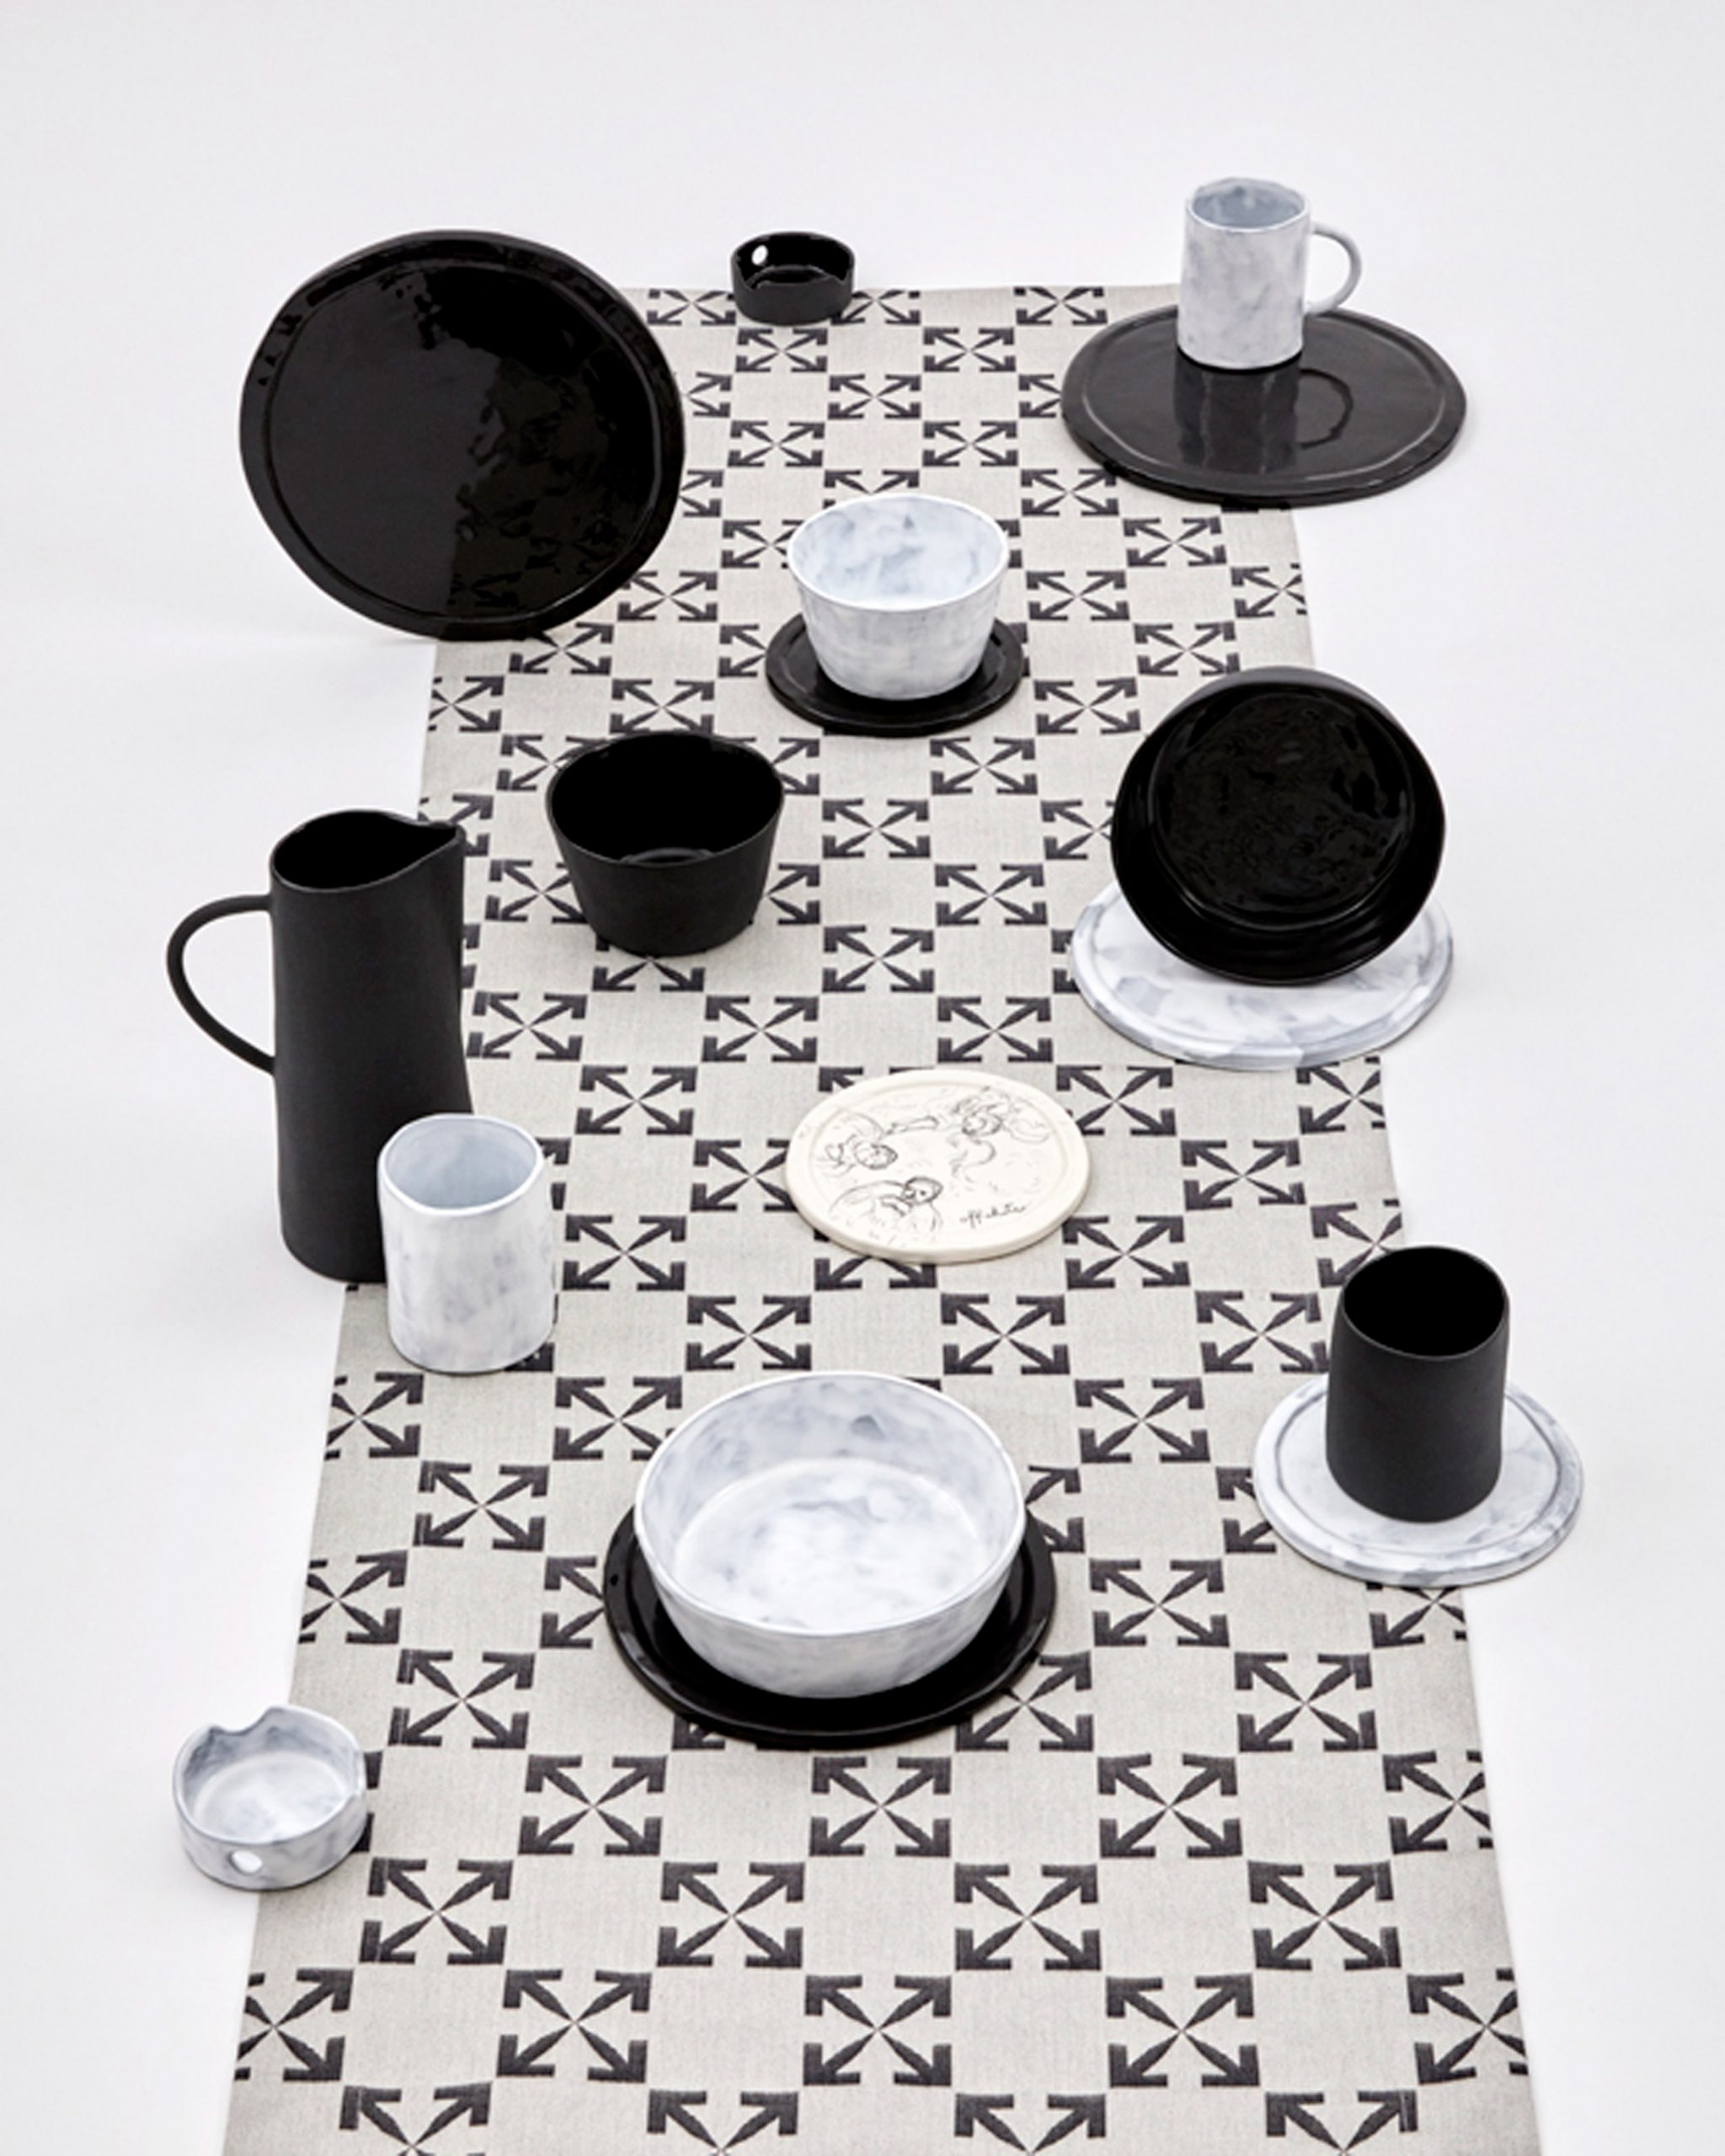 Kitchenware in HOME collection by Off-White